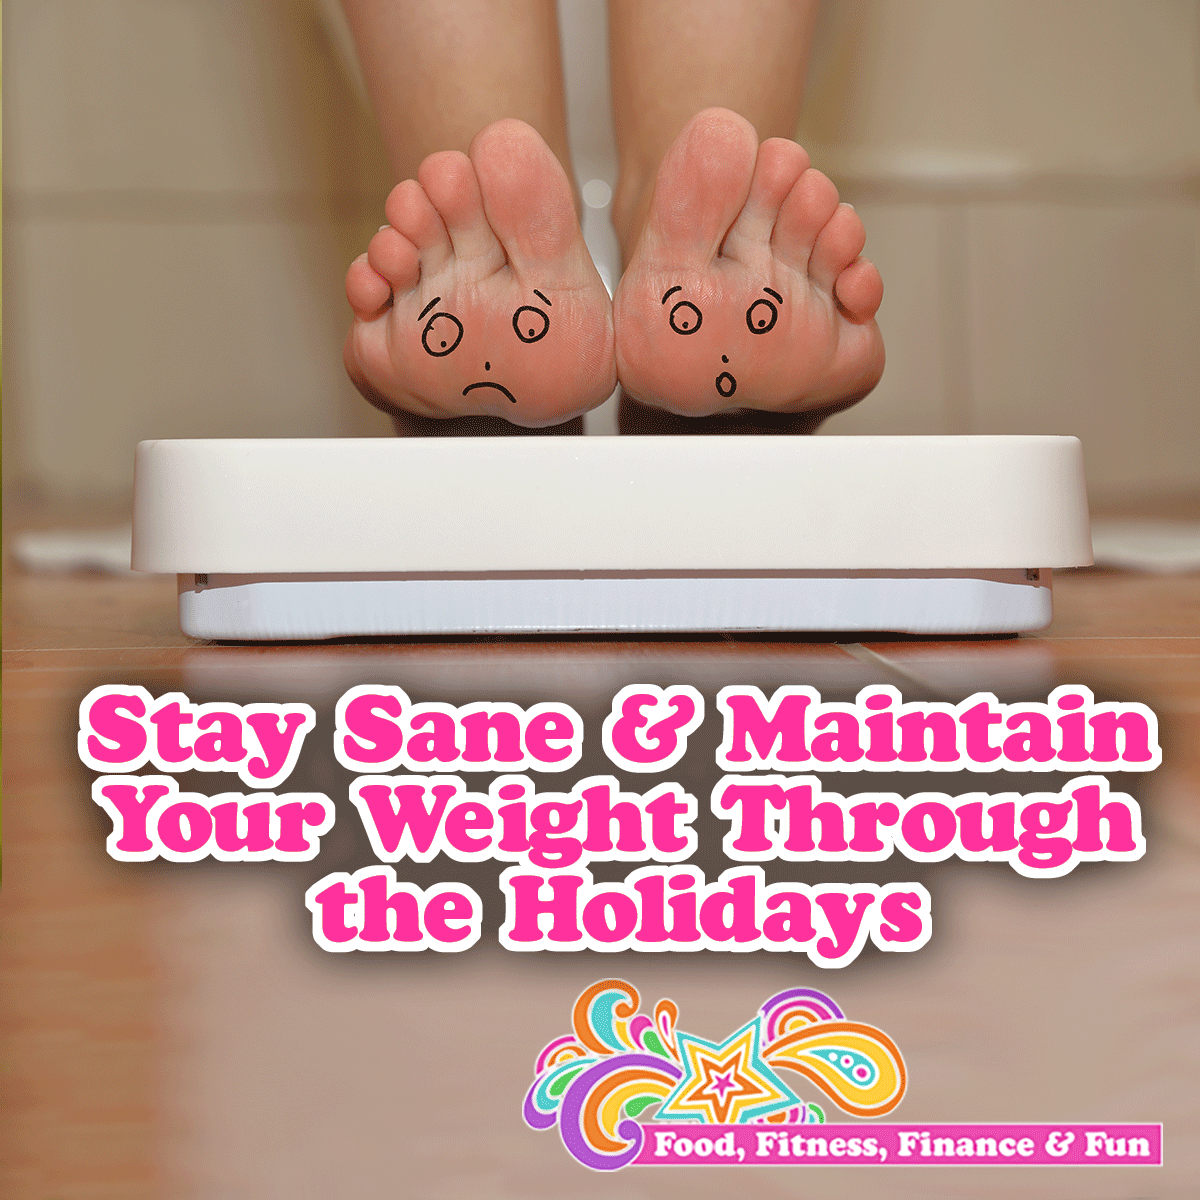 Stay Sane and Maintain Your Weight During The Holidays